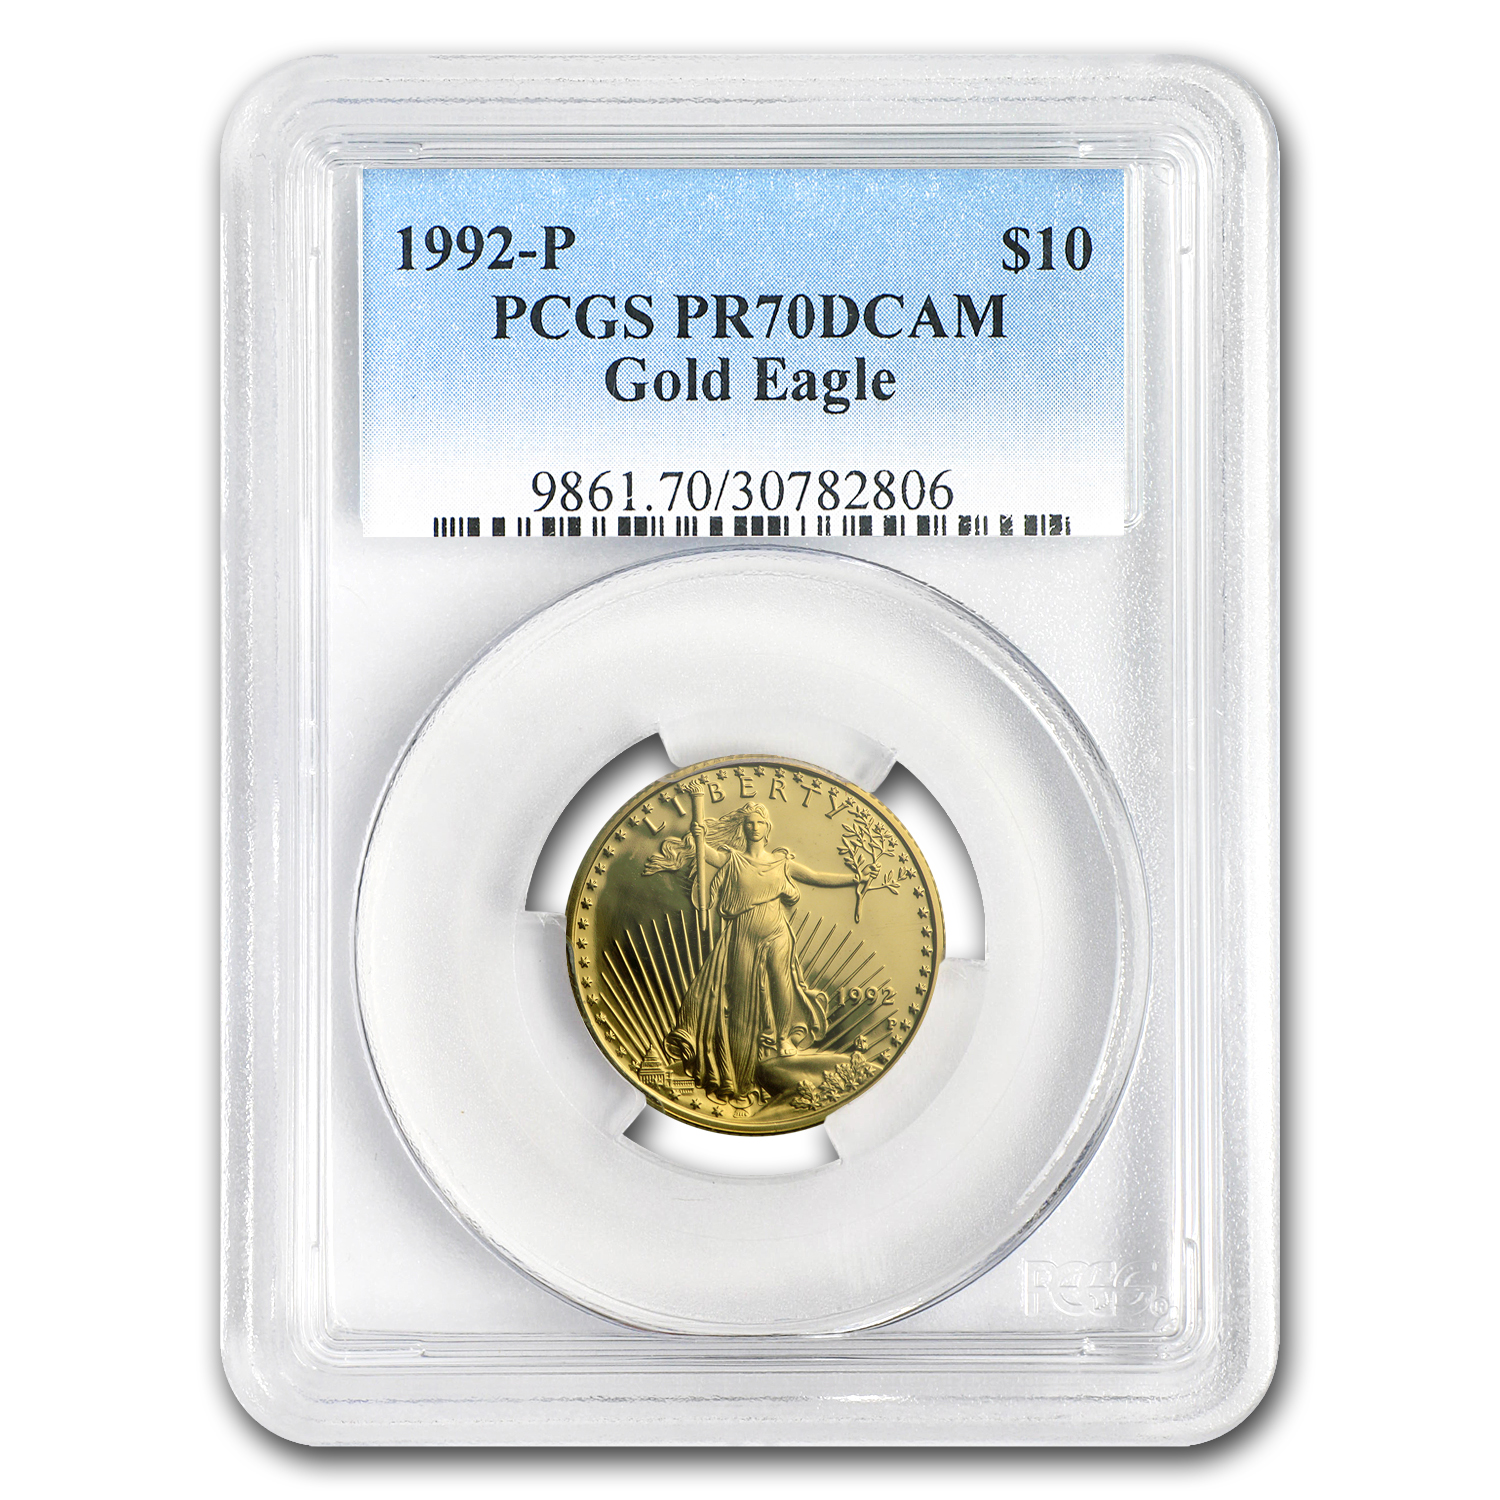 1992-P 1/4 oz Proof Gold American Eagle PR-70 PCGS